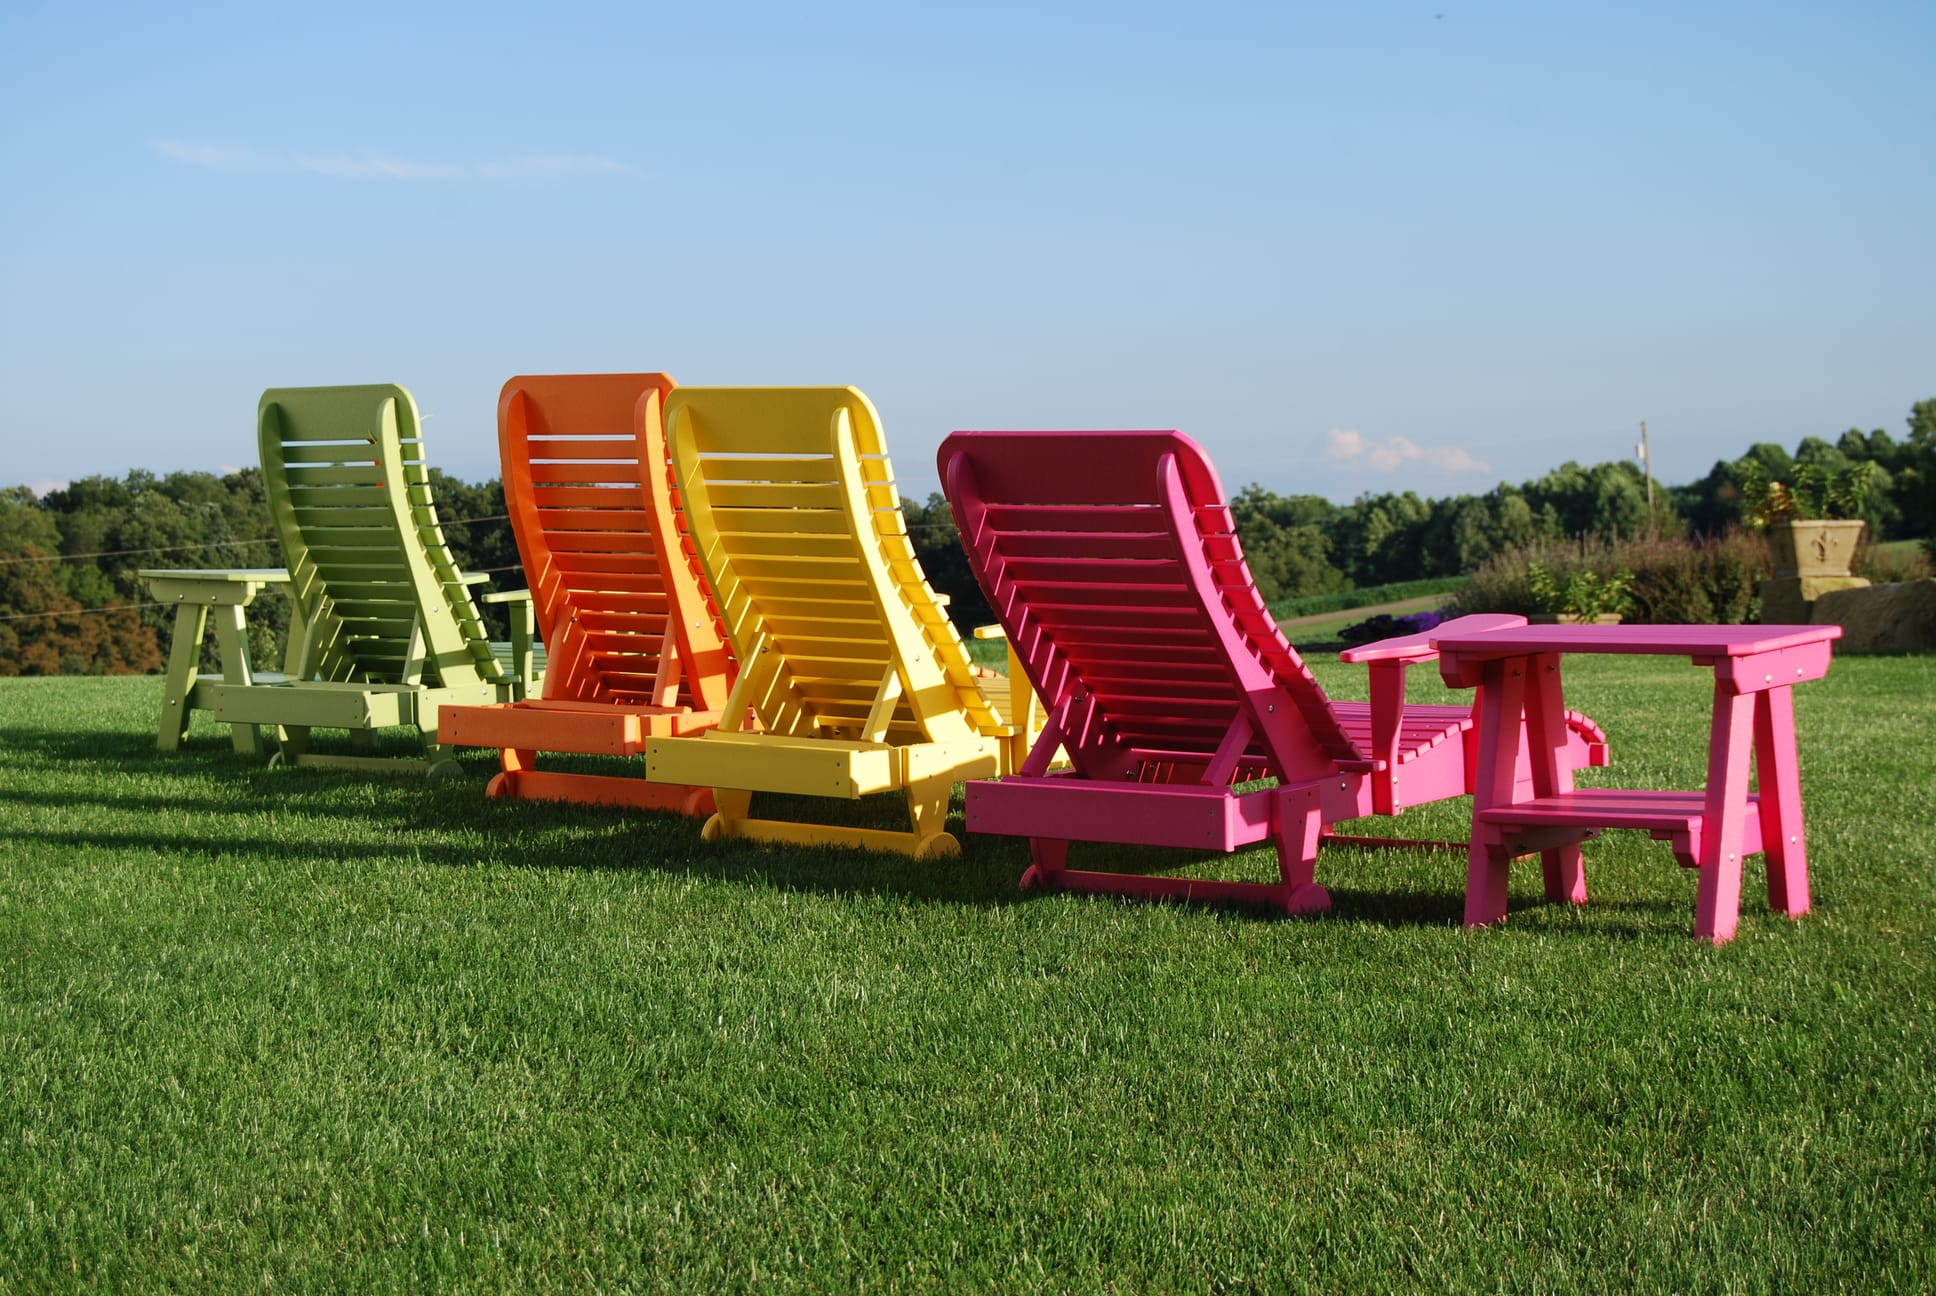 Poly chaise lounge chairs in four colors